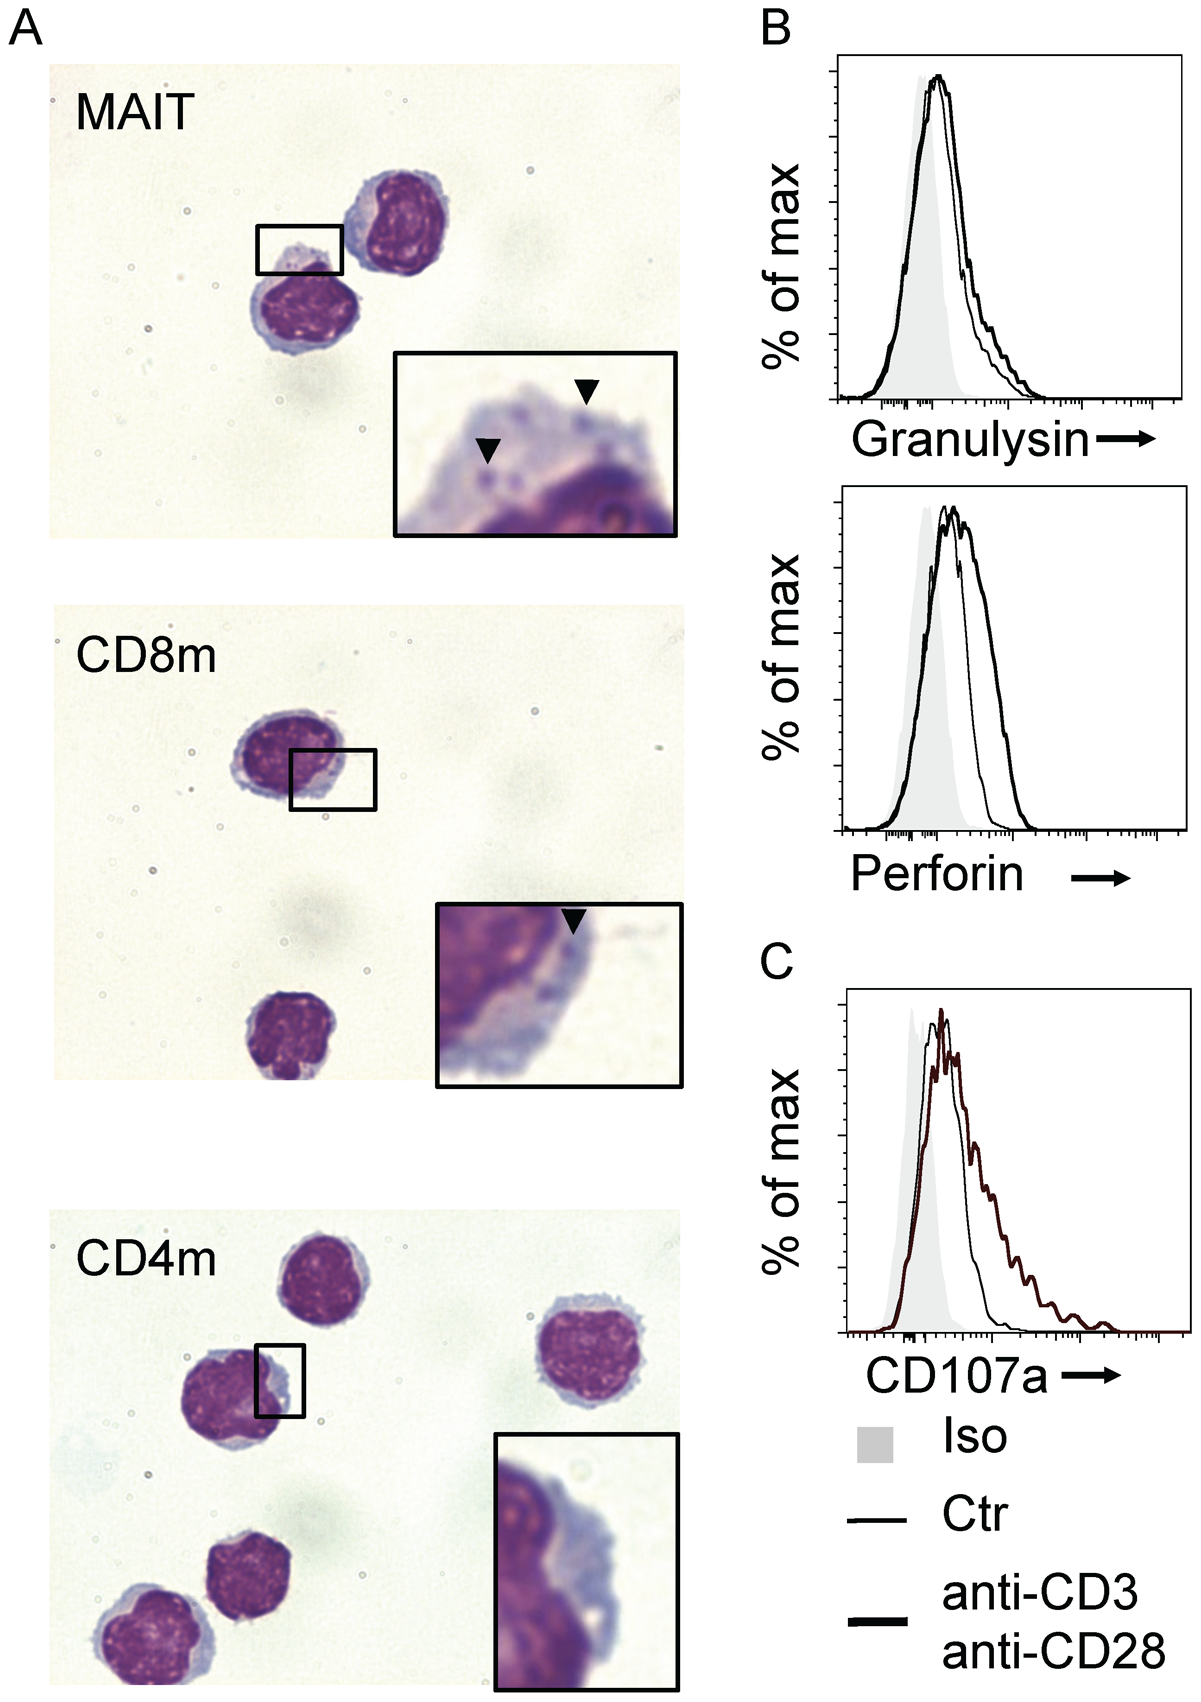 Human MAIT cells have a cytotoxic potential.